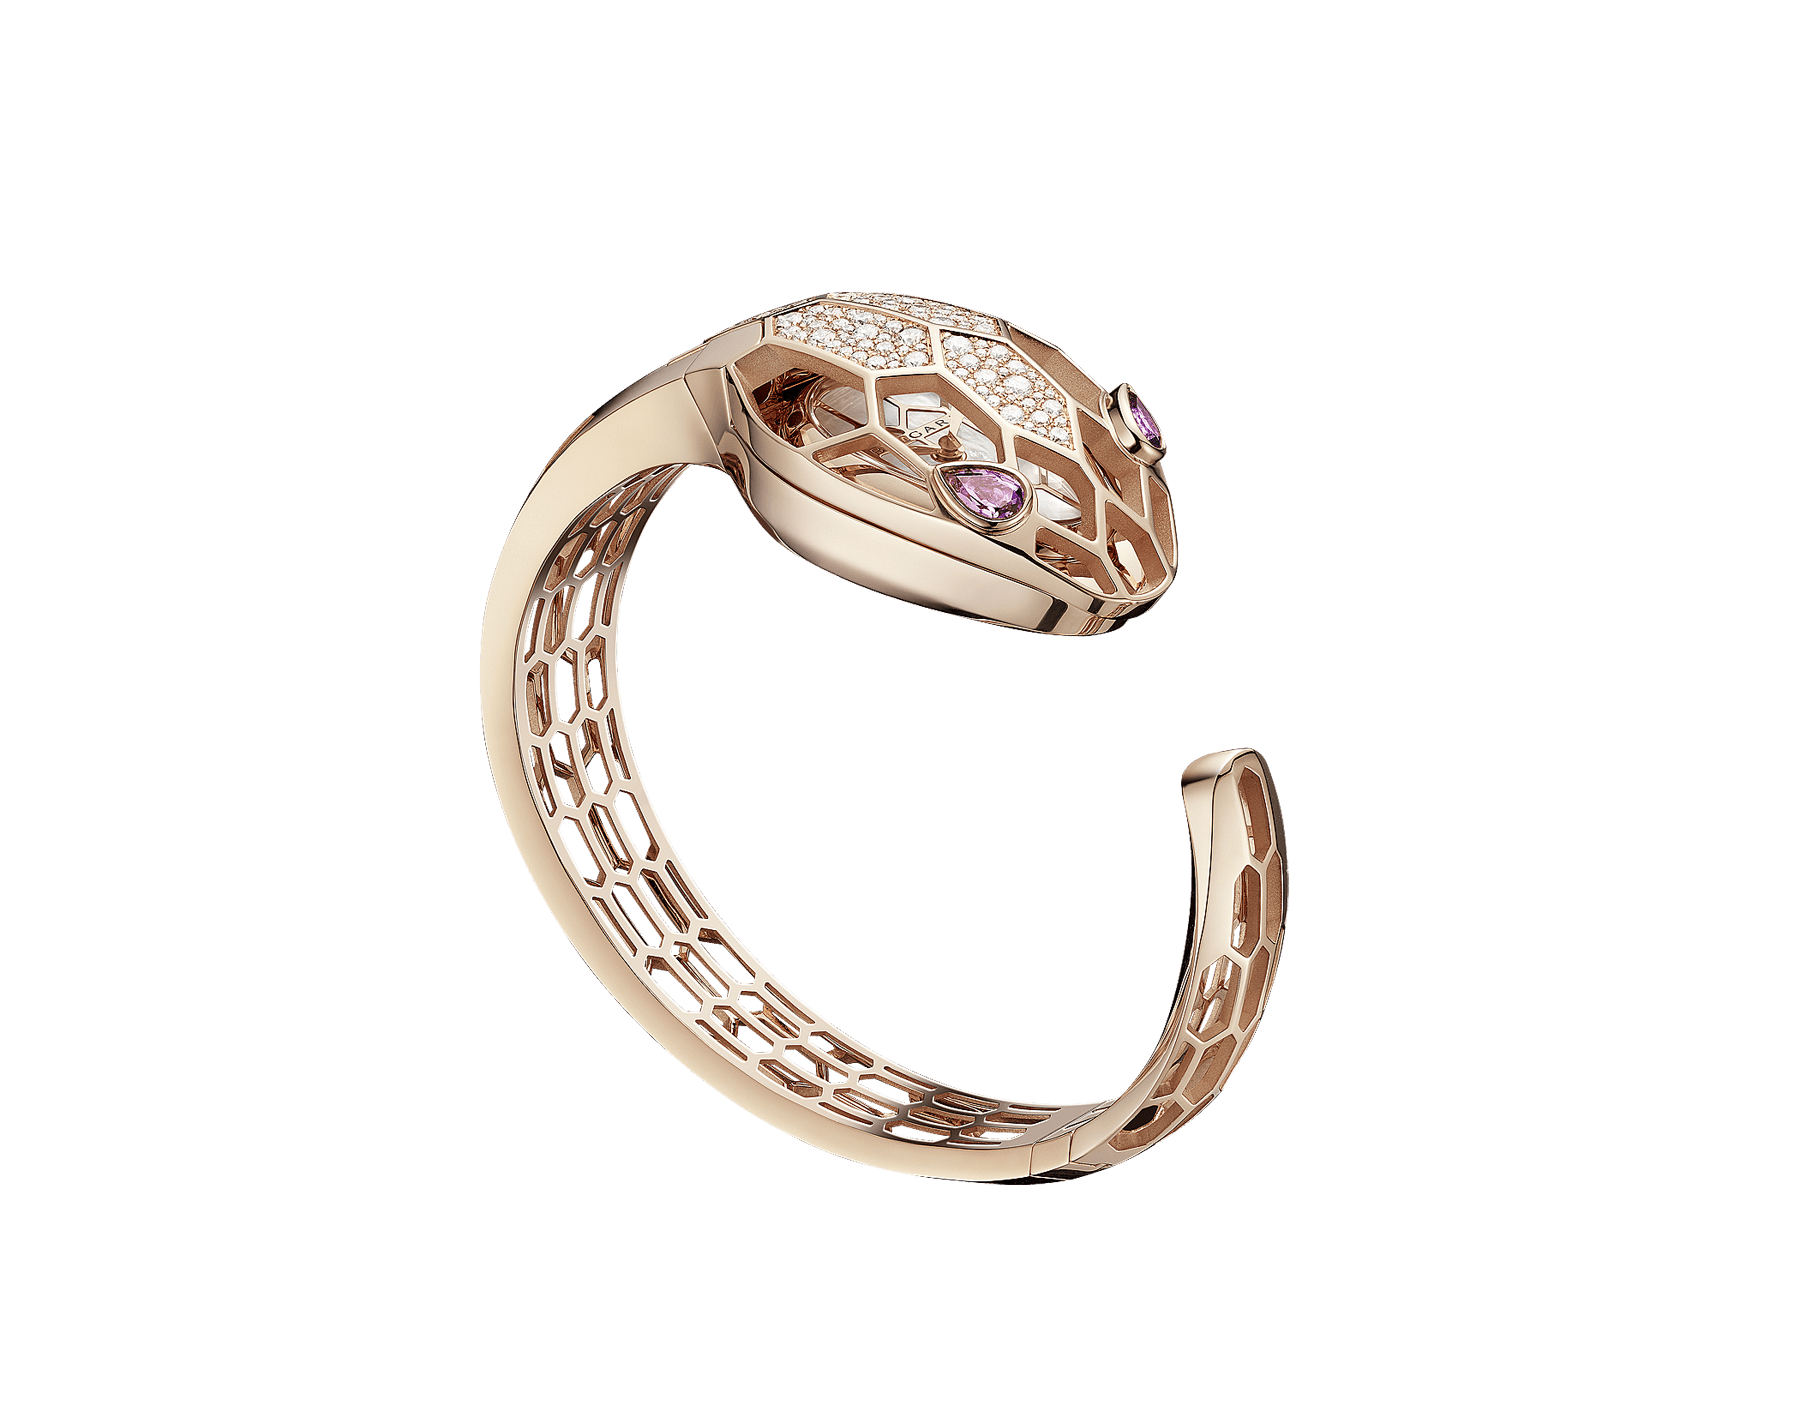 Serpenti Misteriosi Secret Watch with 18 kt rose gold skeletonized case set with round brilliant-cut diamonds, white mother-of-pearl dial, 18 kt rose gold skeletonized bangle bracelet and pear-shaped amethyst eyes. 102982 image 1